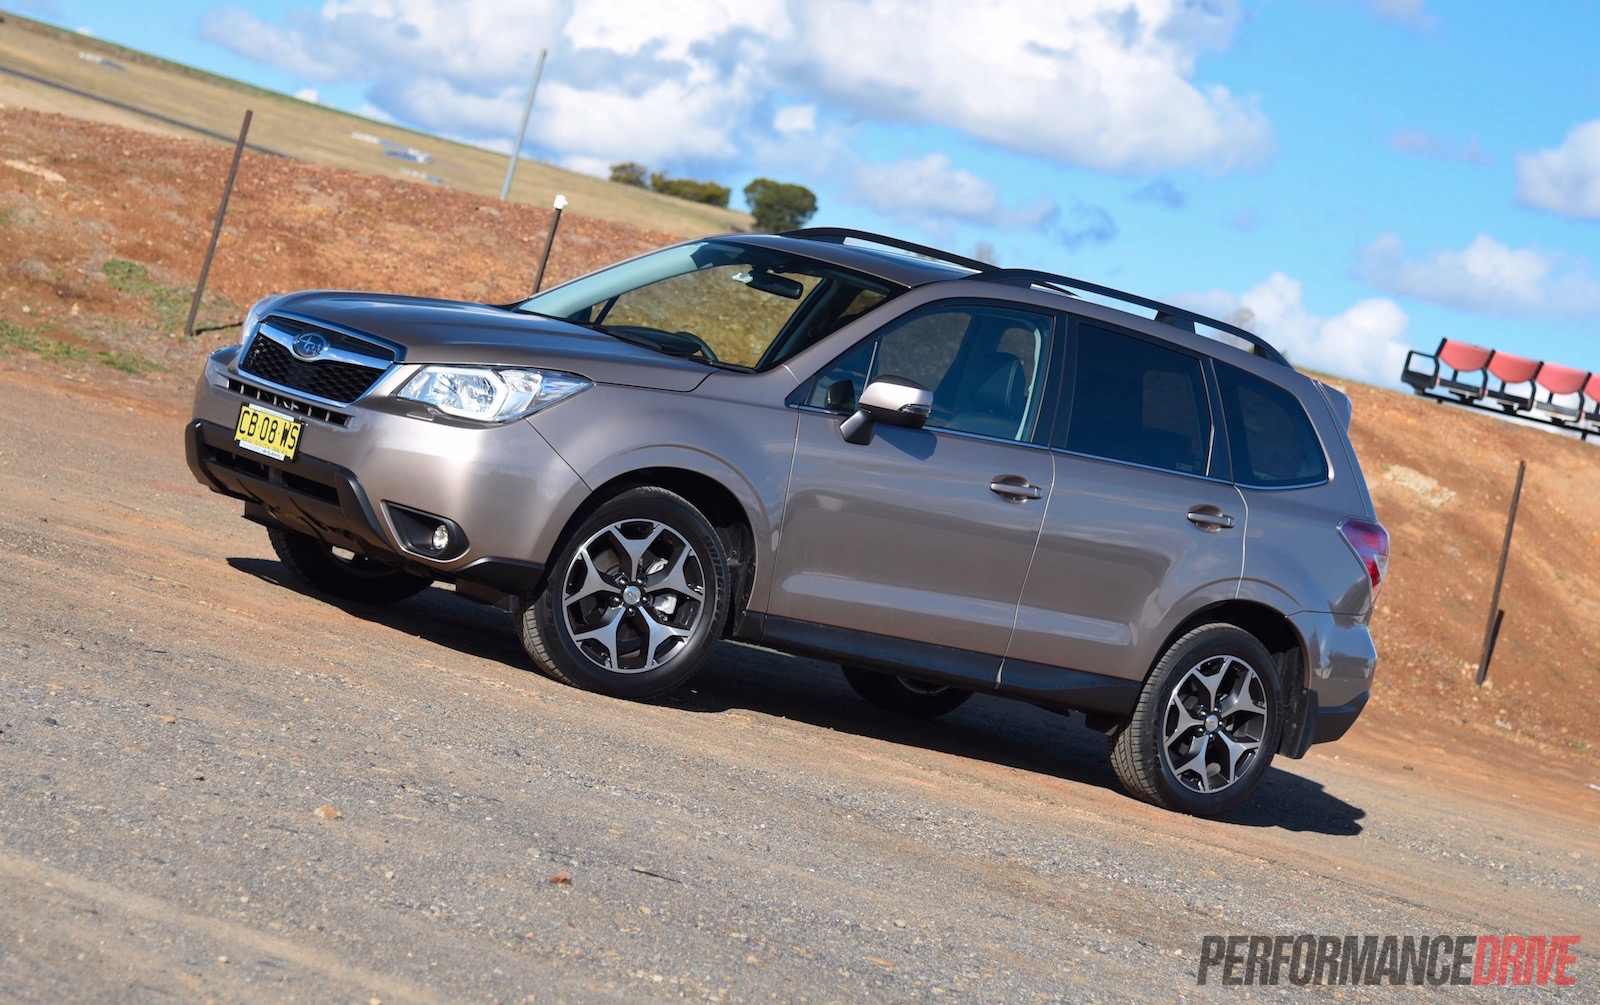 2015 Subaru Forester 2 0D S review video